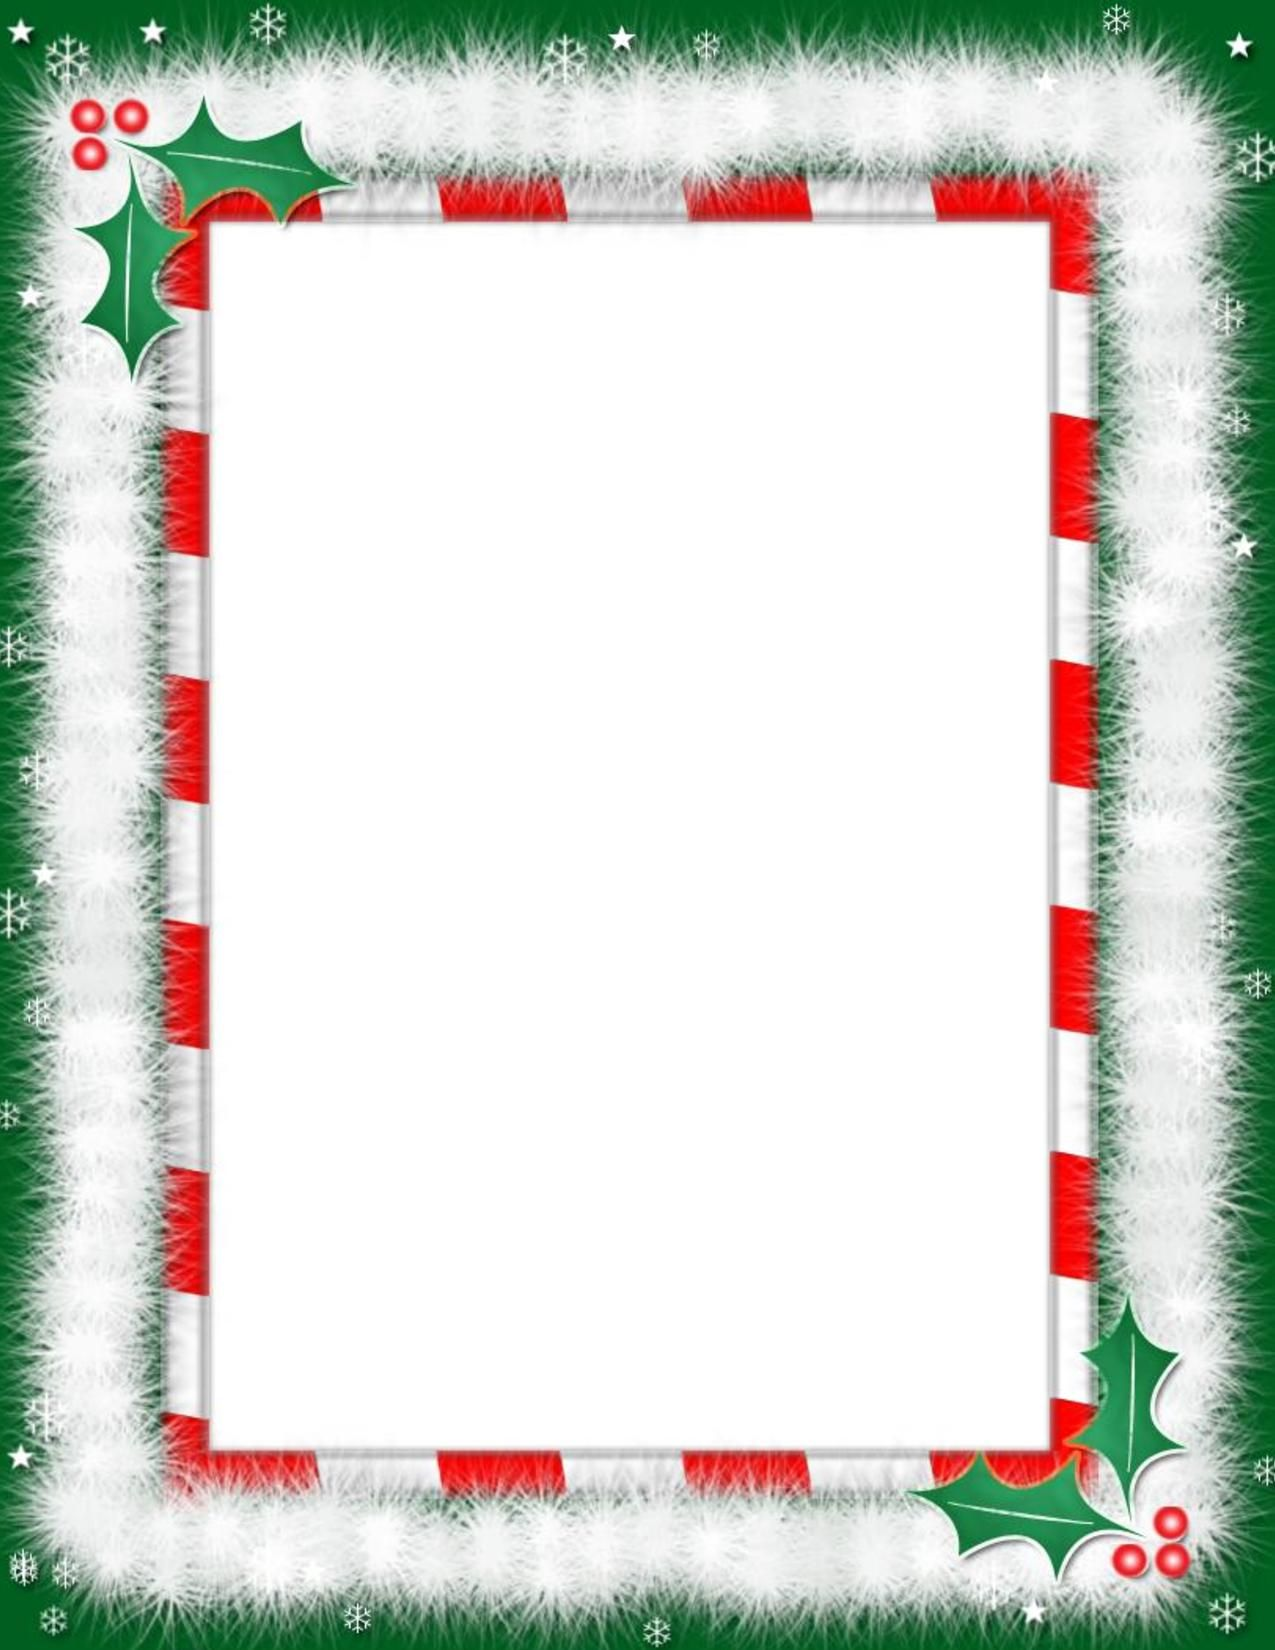 heart word borders templates free borders for word documents christmas borders to download free free